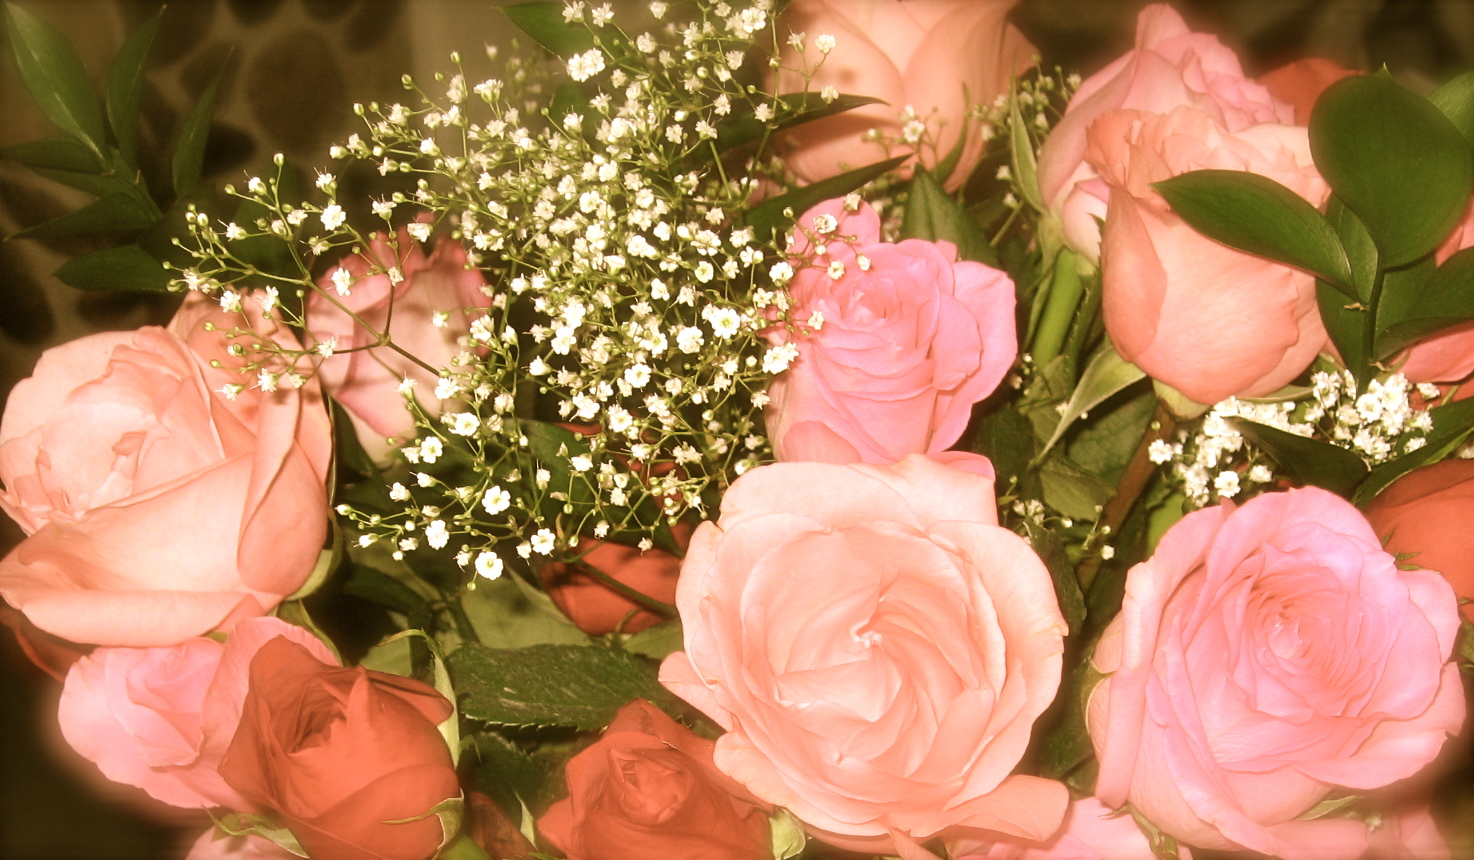 lovely roses to brighten your day